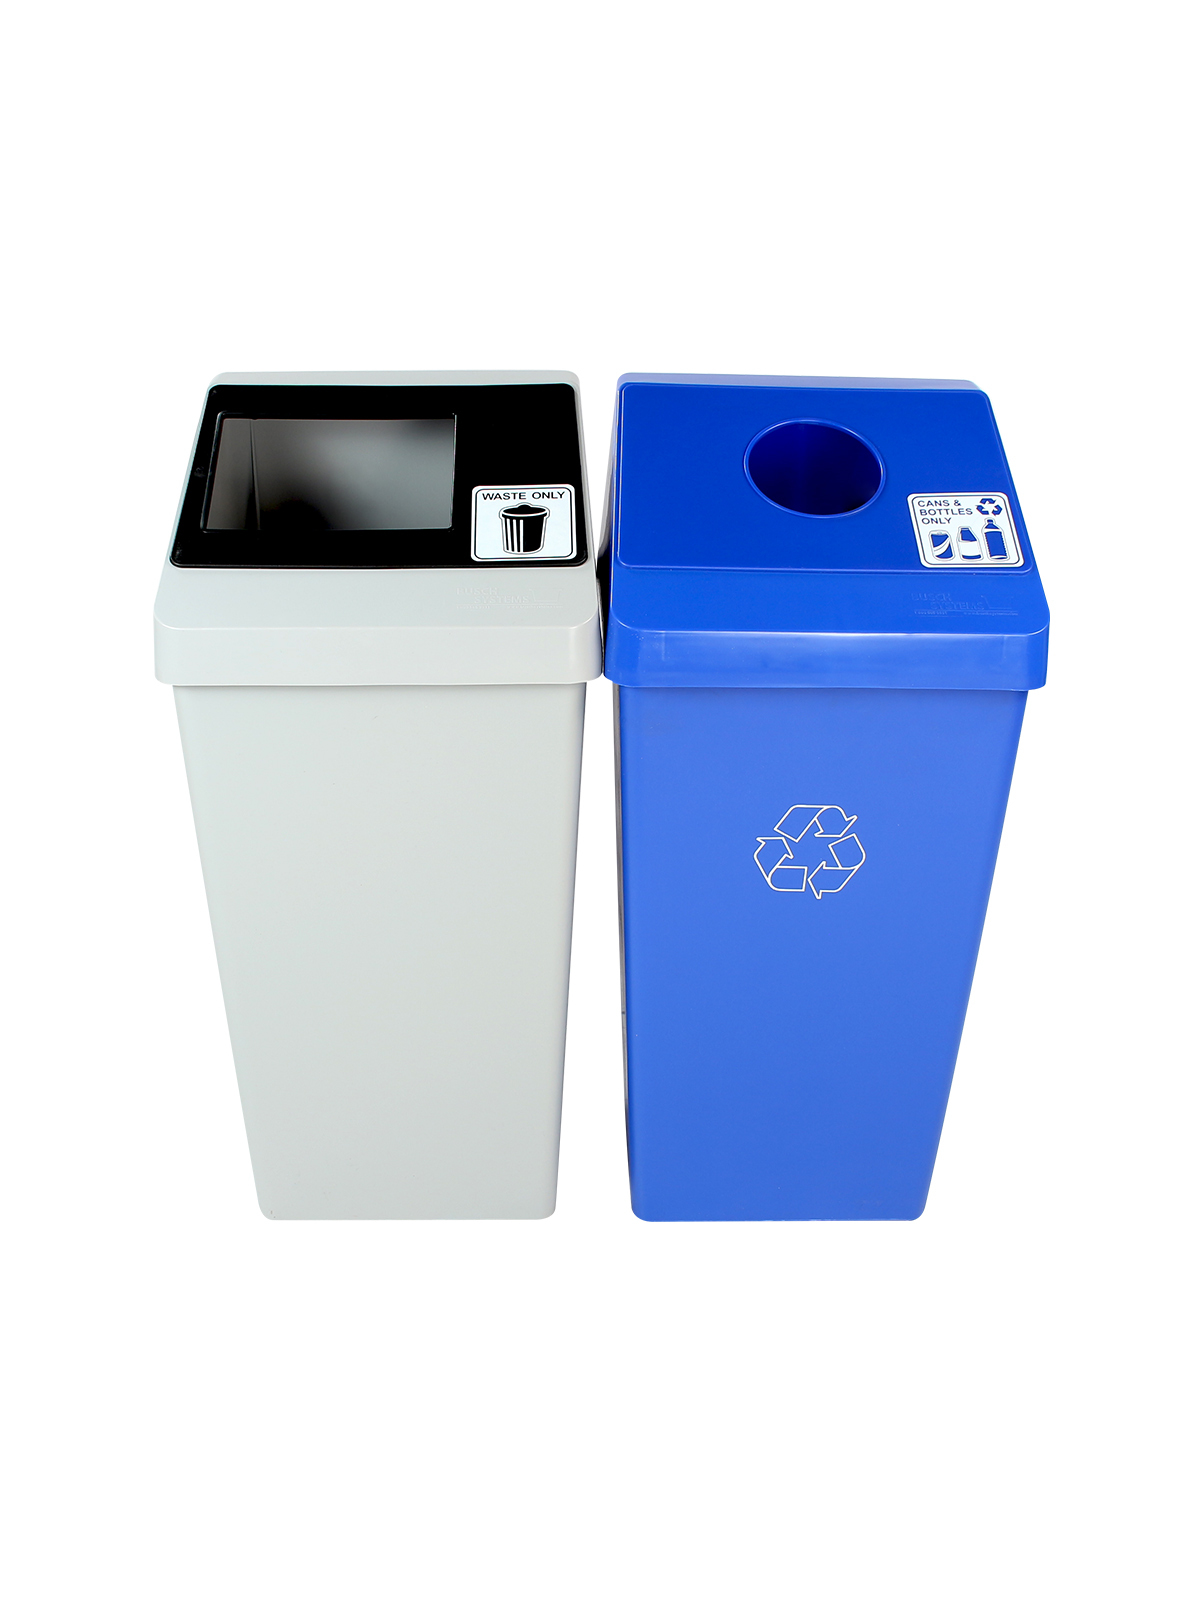 SMART SORT - DOUBLE - CIRCLE | FULL - BLUE | GREY | BLACK - CANS & BOTTLES ONLY | WASTE ONLY title=